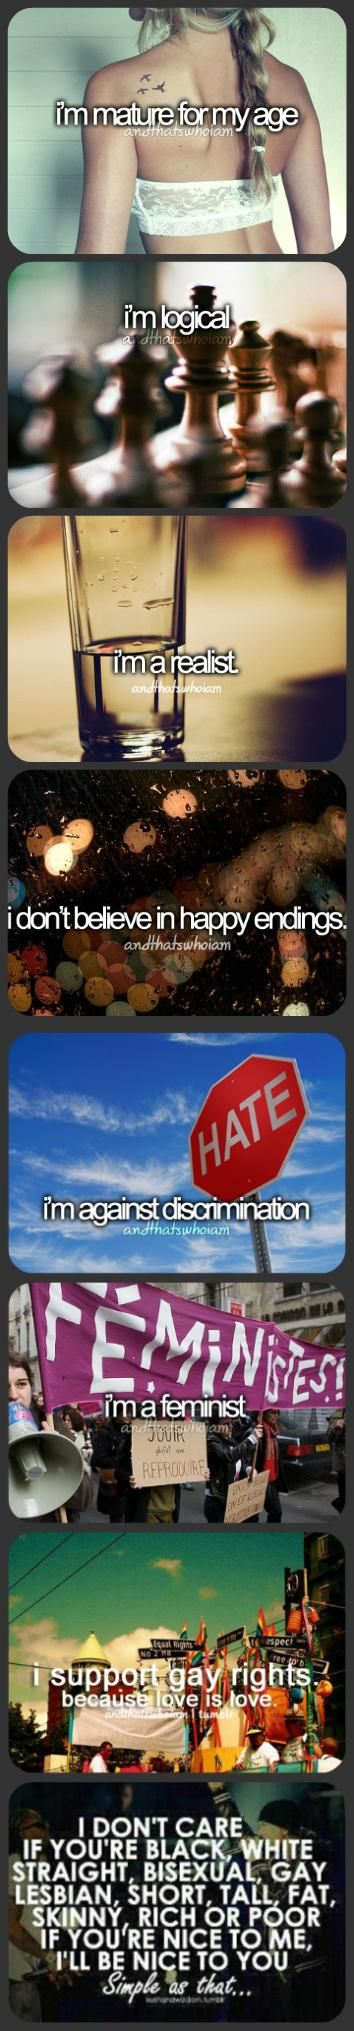 But I do believe in happy ending though! And maybe I'm not quite mature for my age..... But then again I might be...